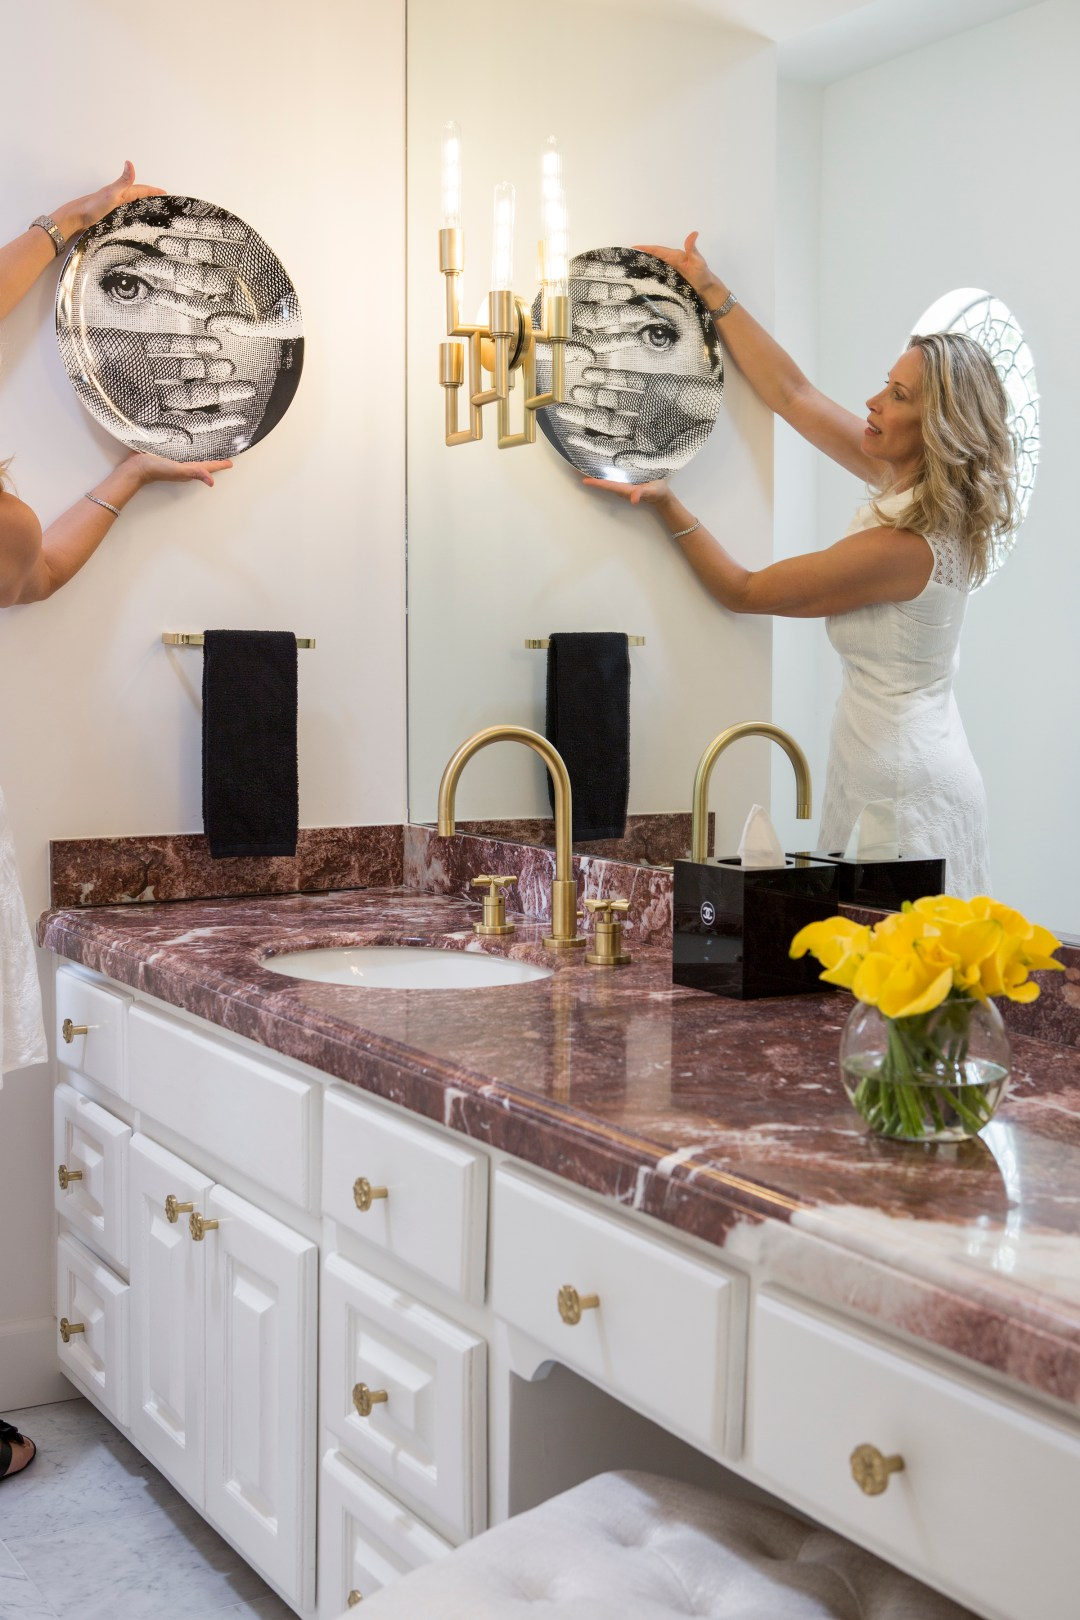 Lori Dennis hangs fornasetti decorative plate on bel air road bathroom wall next to lamps plus brass sconce